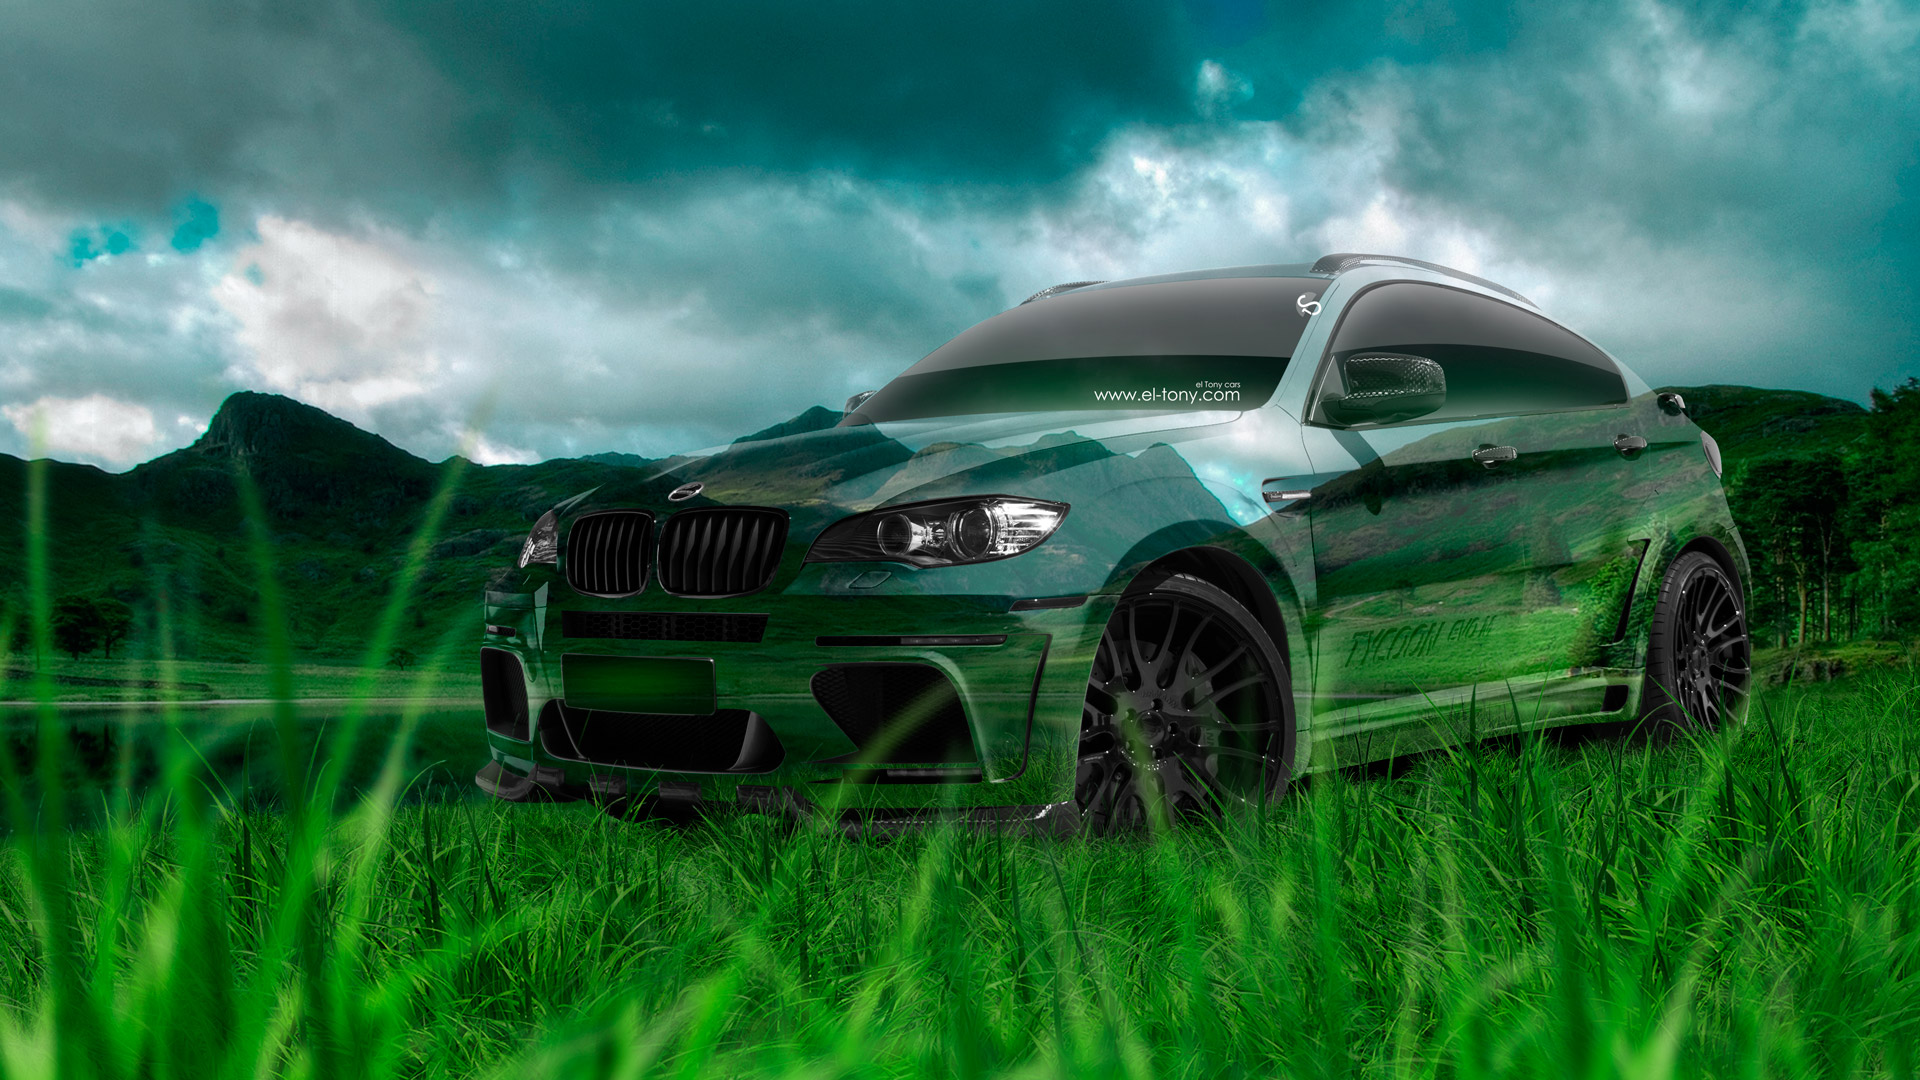 BMW X6 Hamann Tuning Crystal Nature Car 2014